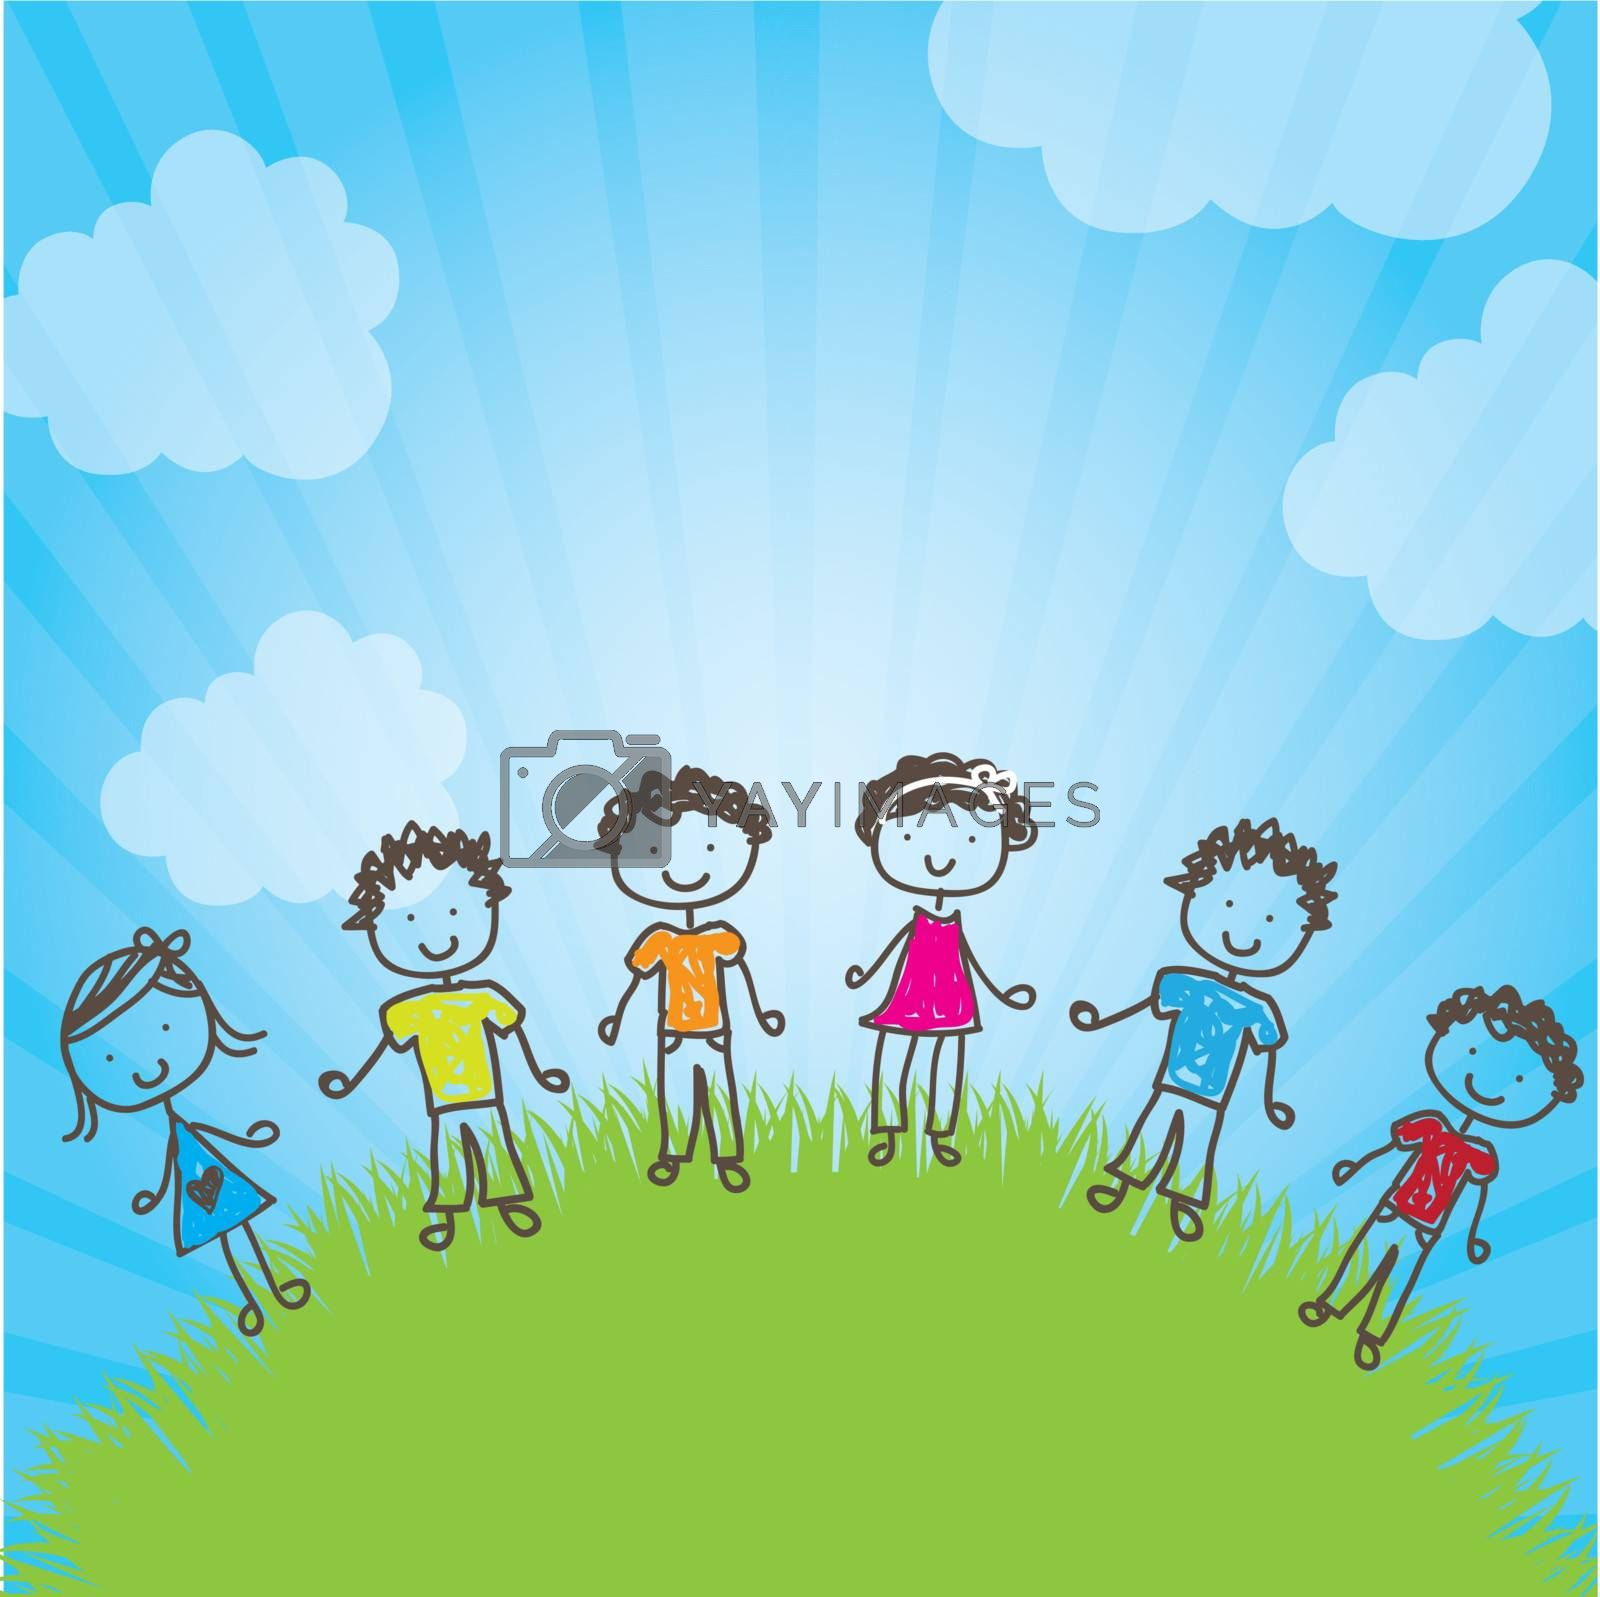 many happy children in a natural vector illustration